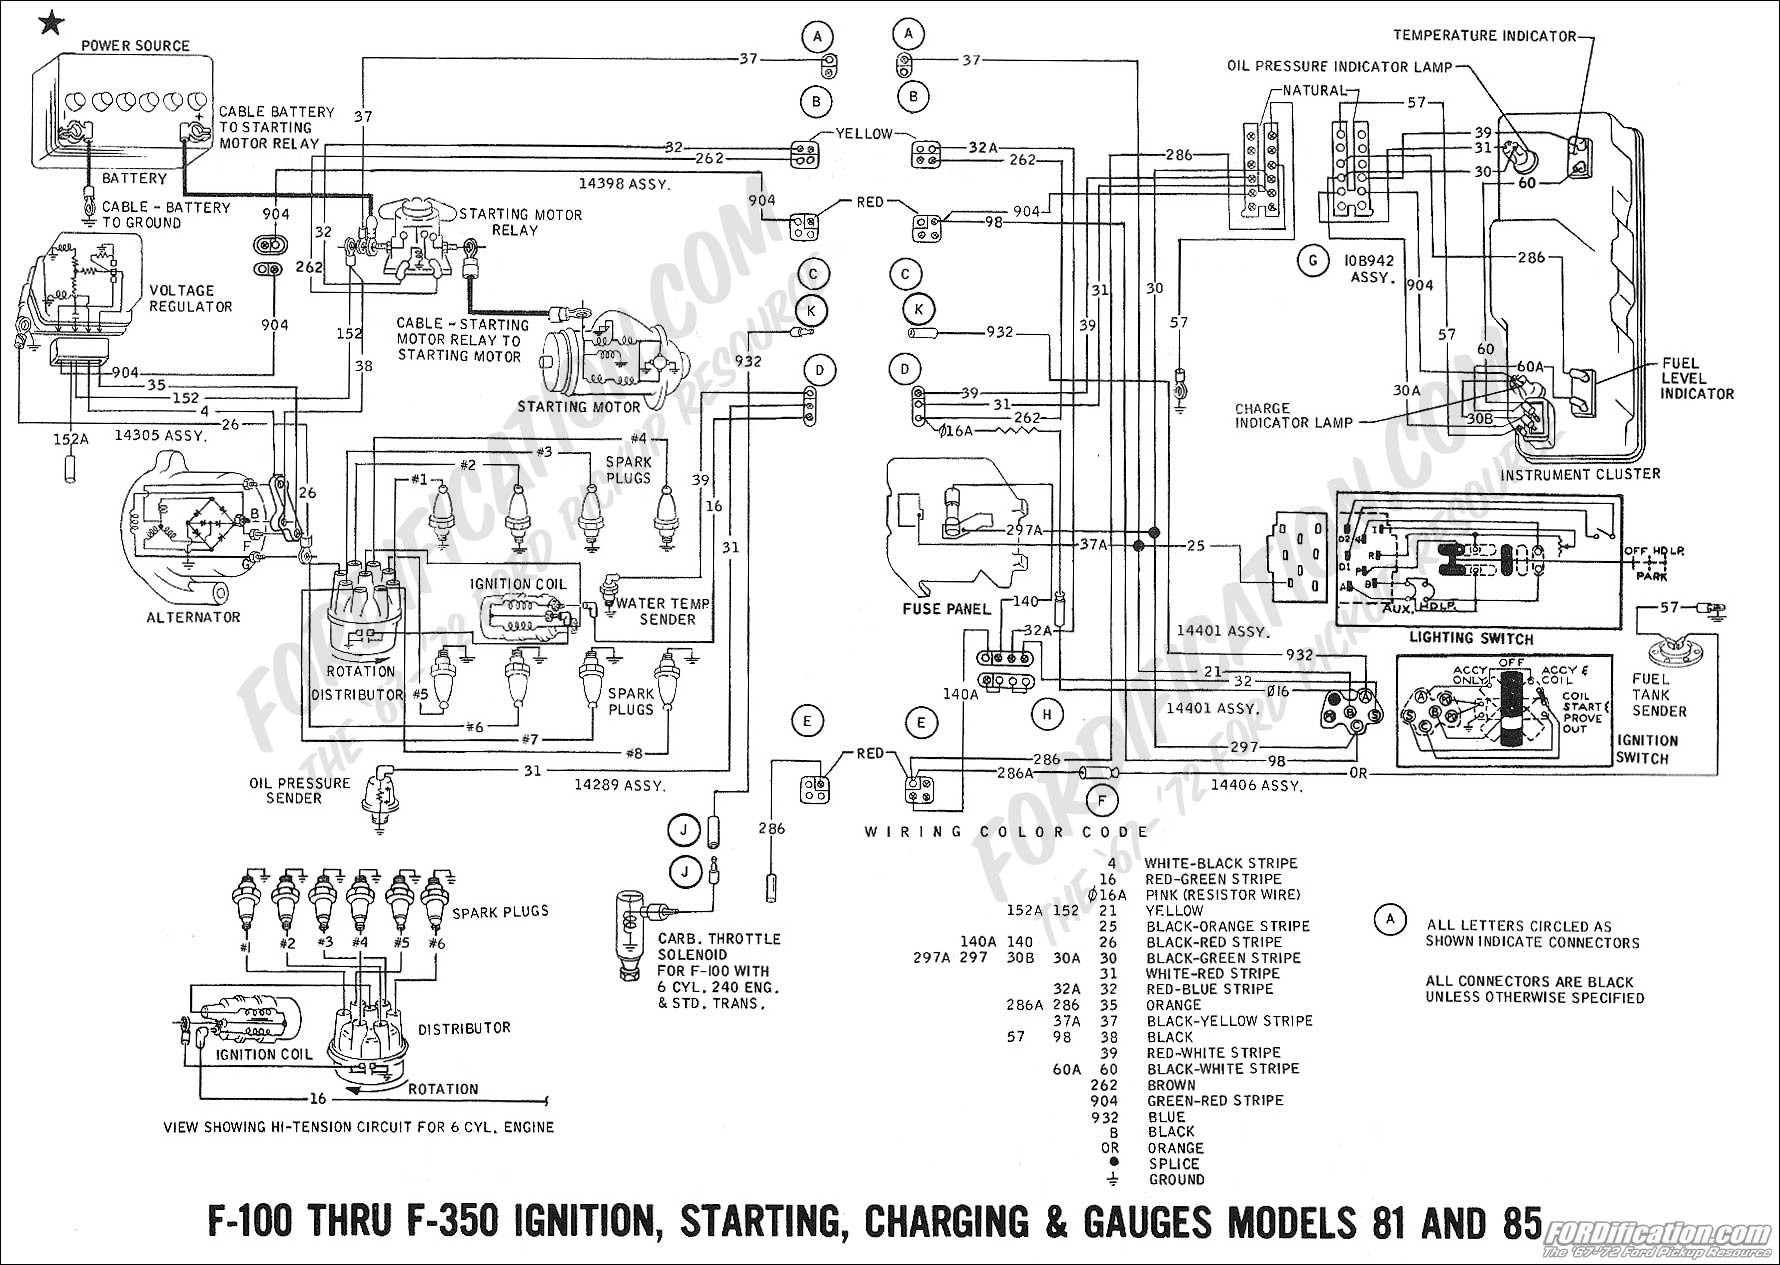 Ford F150 Wiring Harness Diagram 1969 ford F100 Wiring Diagram Wellread Of Ford F150 Wiring Harness Diagram